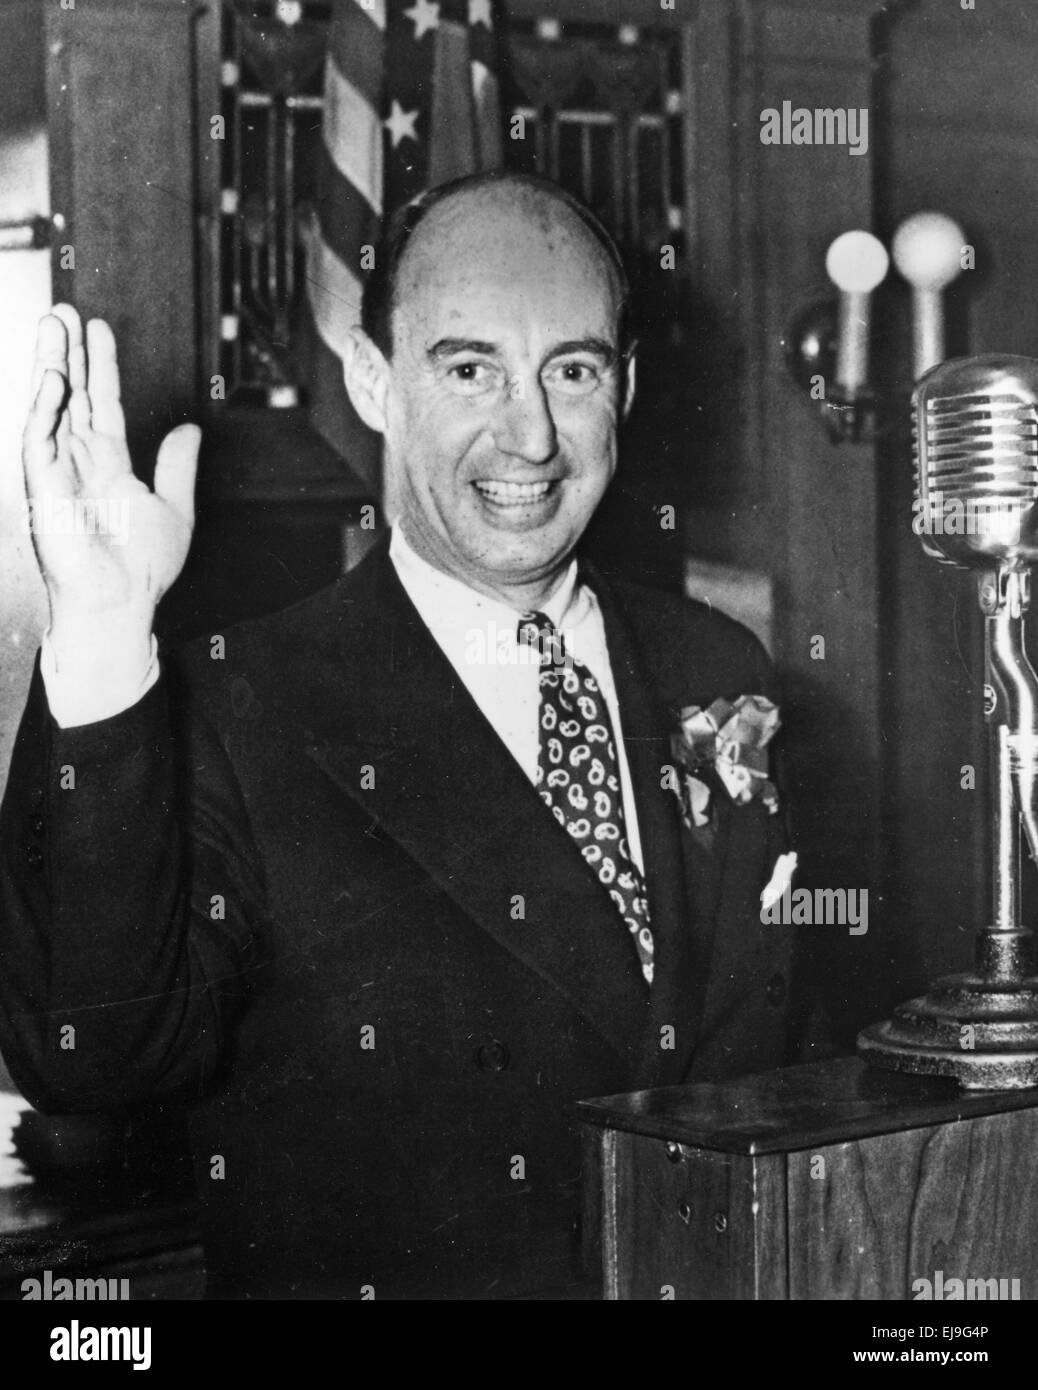 ADLAI STEVENSON III   American Democratic politician about 1980 - Stock Image